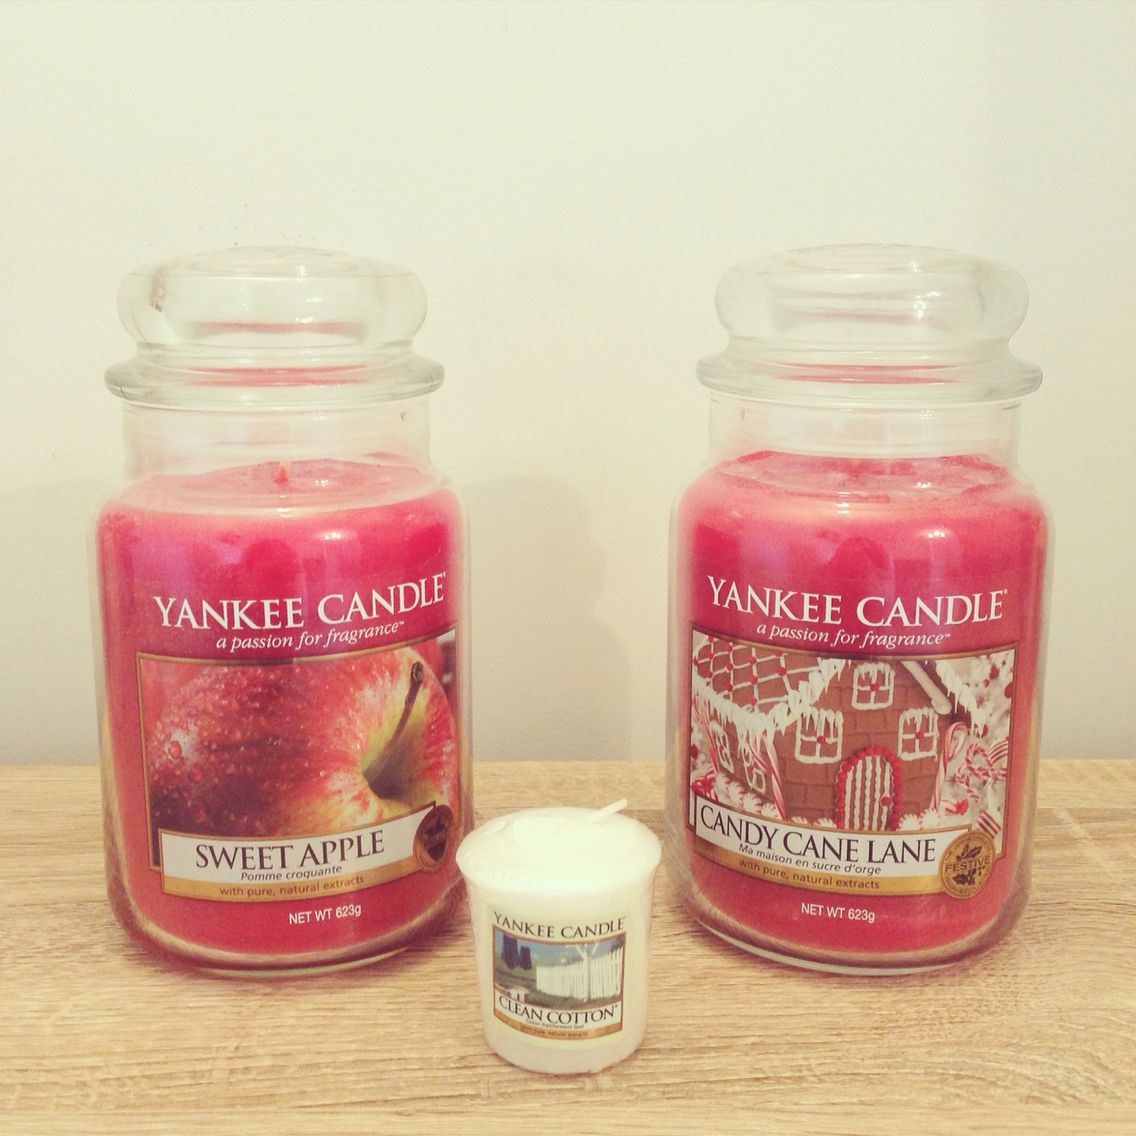 New Yankees Sweet Apple Candy Cane Lane And A Free Clean Cotton